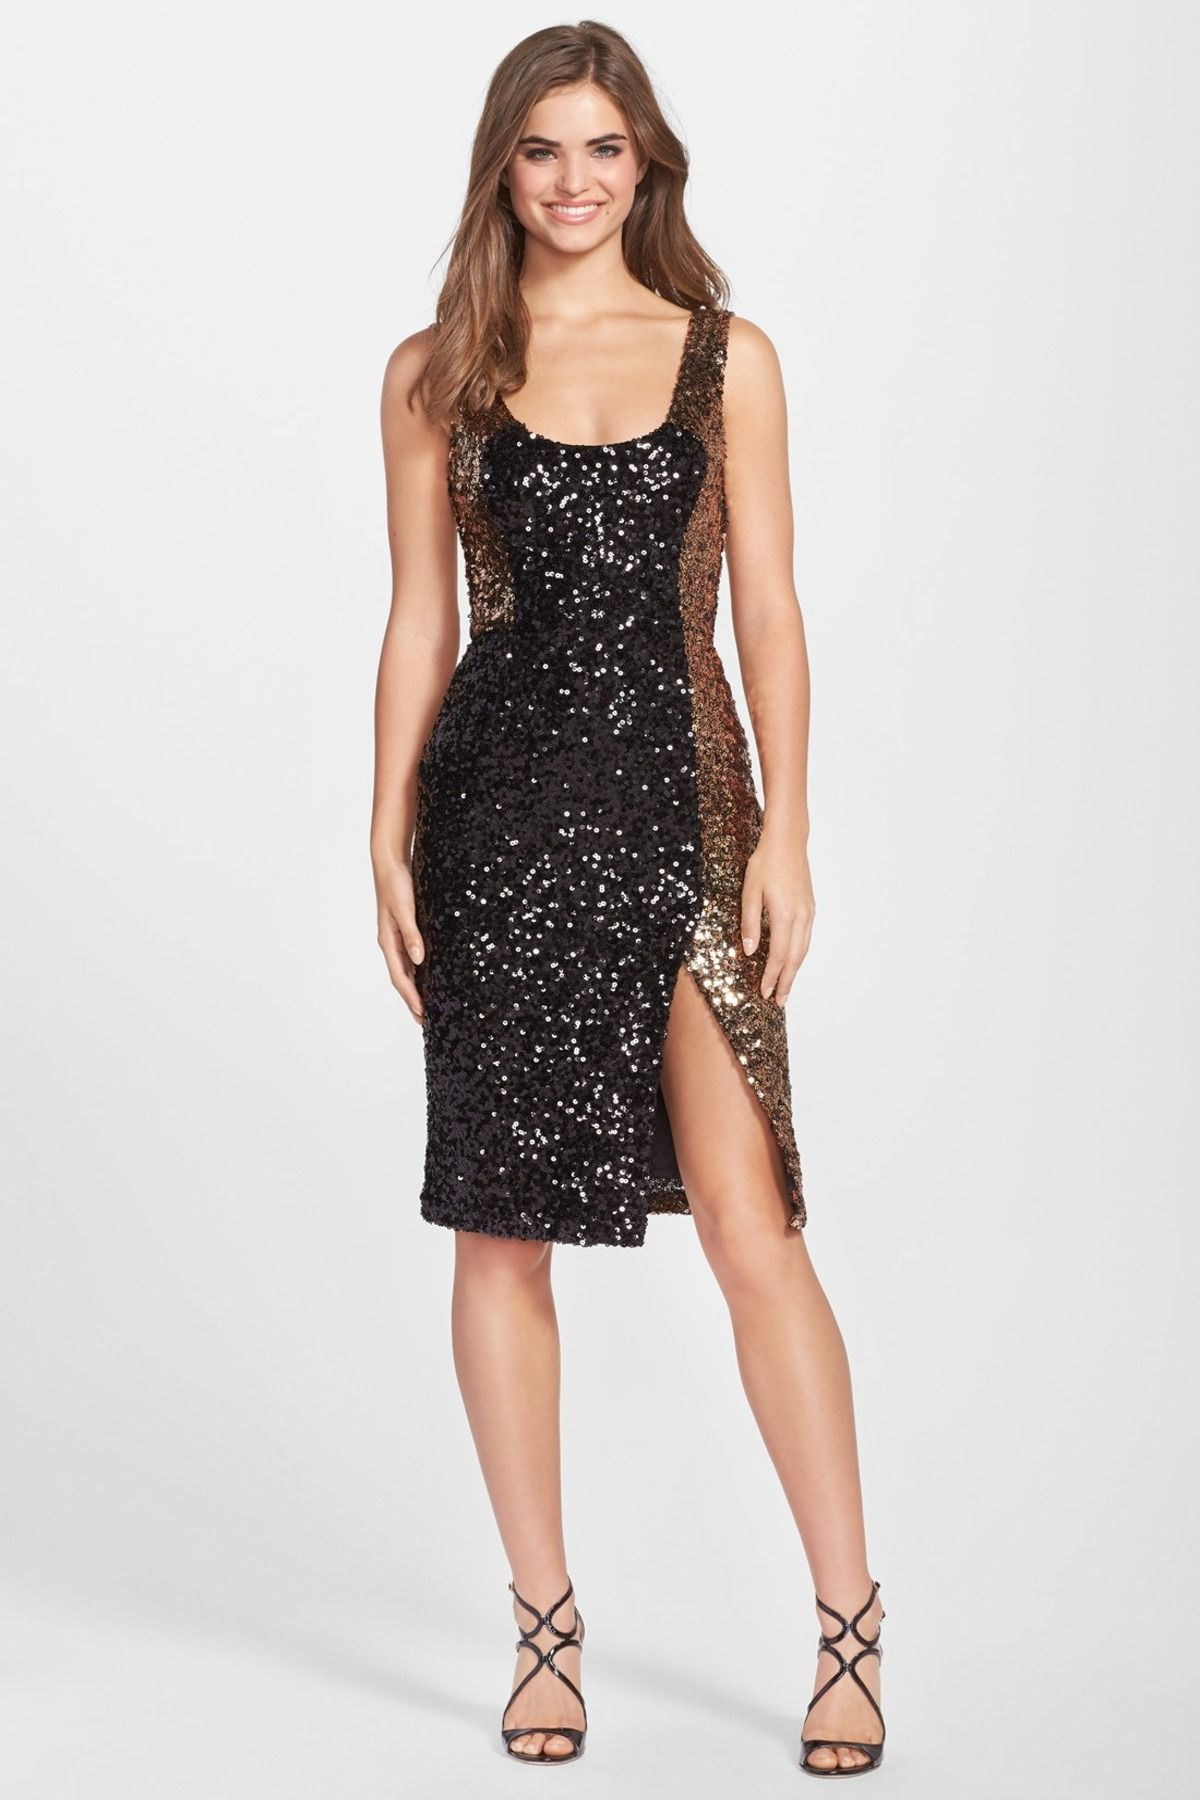 French connection cosmic sparkle sequin sheath dress